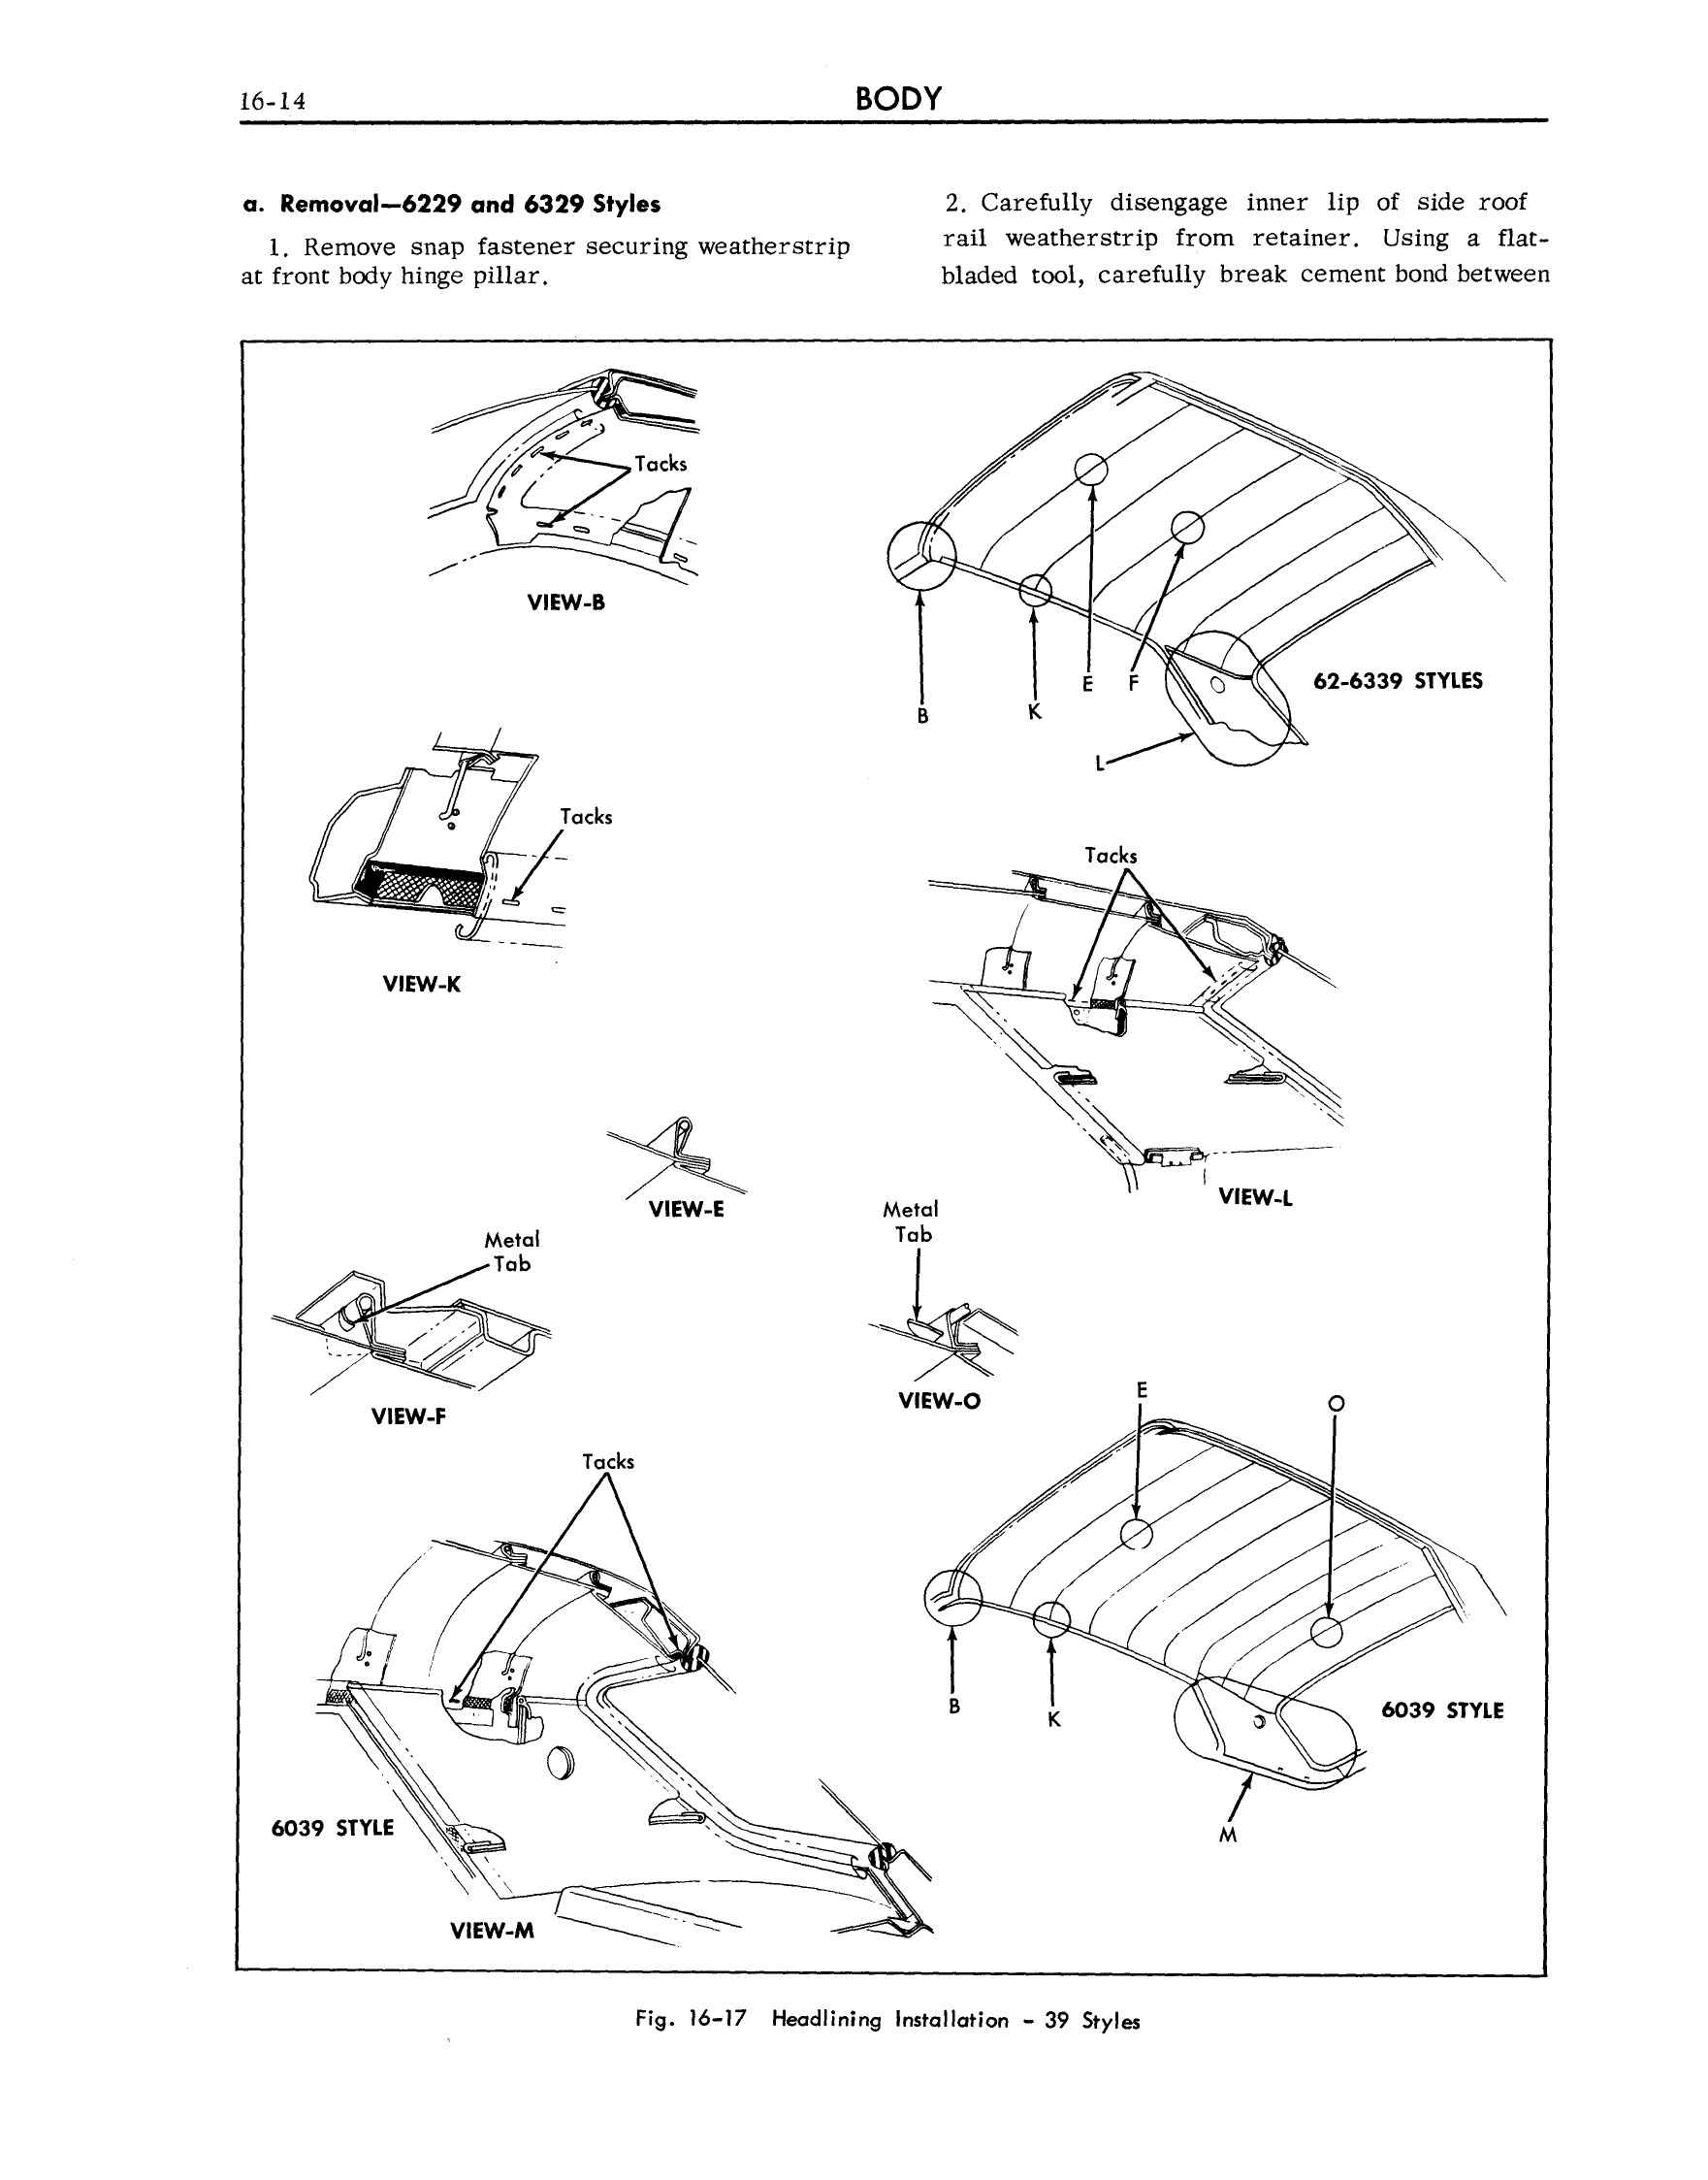 1963 Cadillac Shop Manual- Body Page 14 of 124